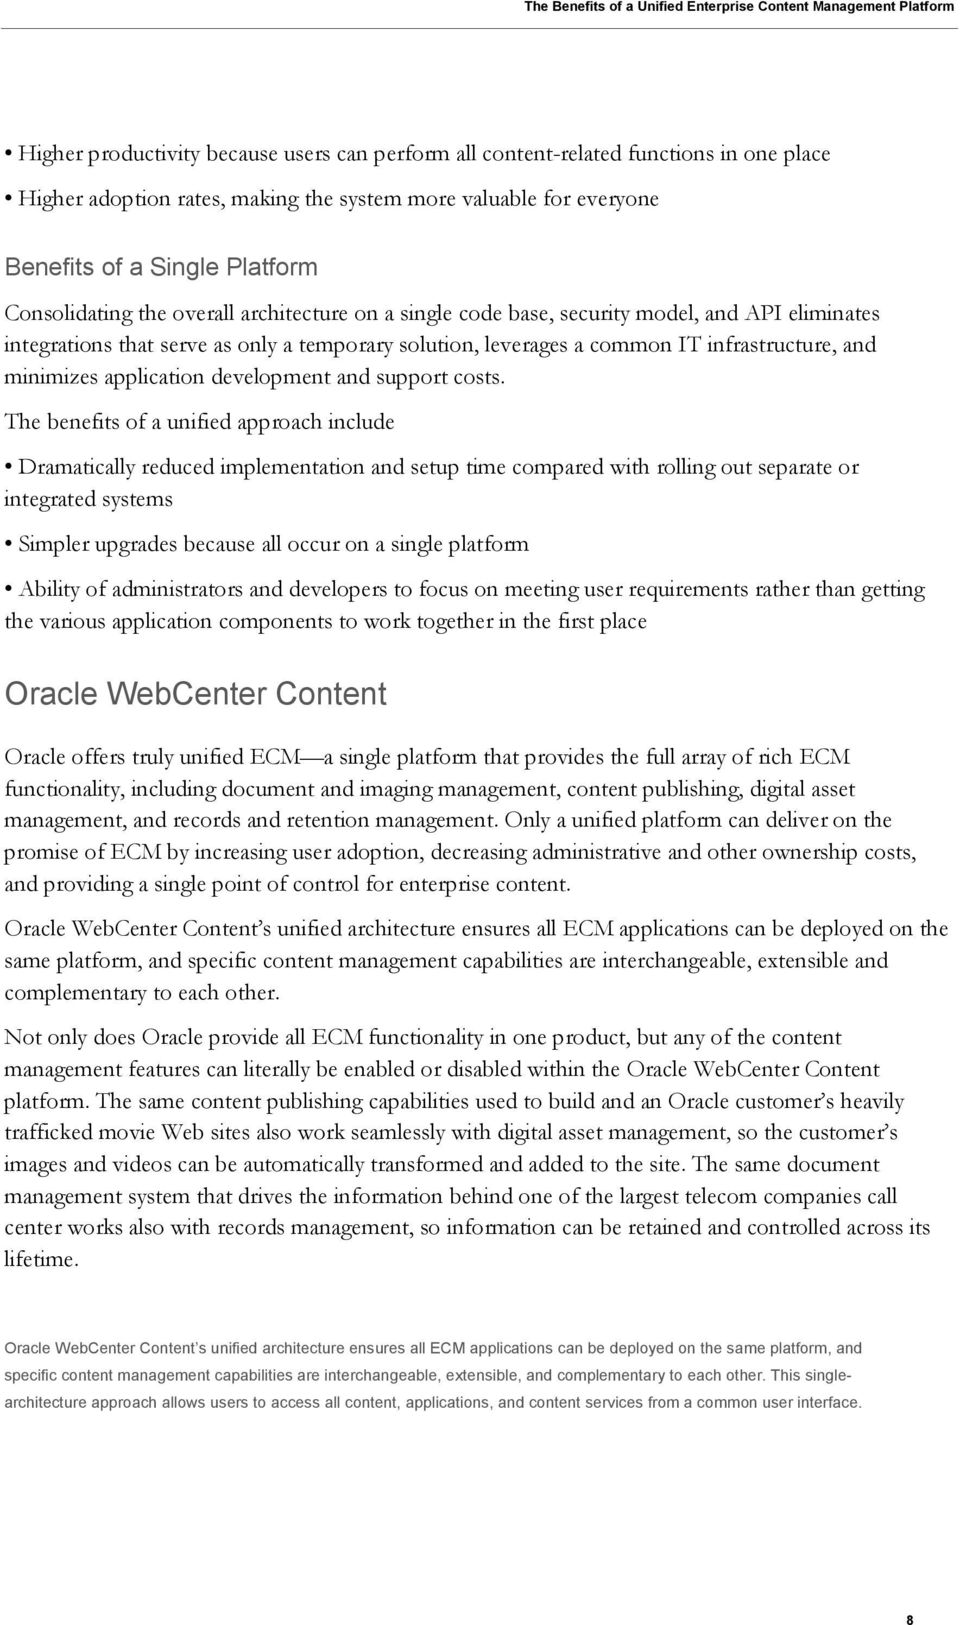 The Benefits Of A Unified Enterprise Content Management Platform Pdf